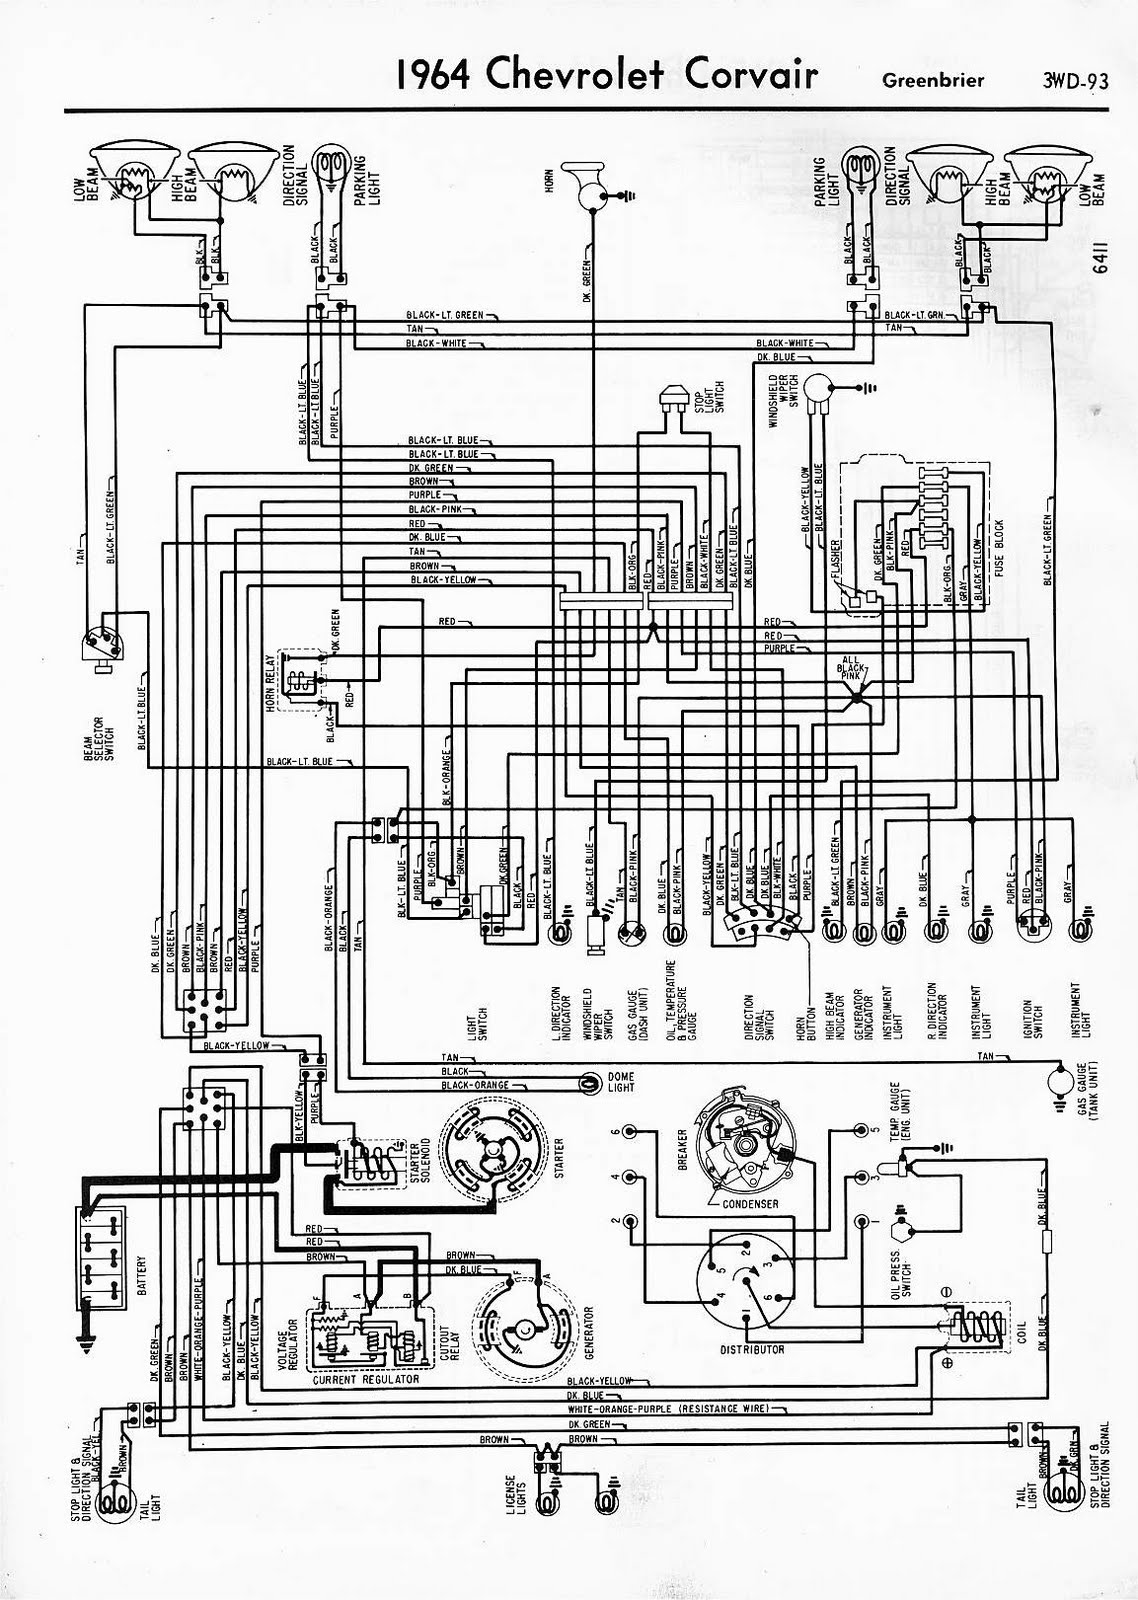 1964 corvair fuse box wiring diagram toolbox1964 corvair fuse box 10 [ 1138 x 1600 Pixel ]